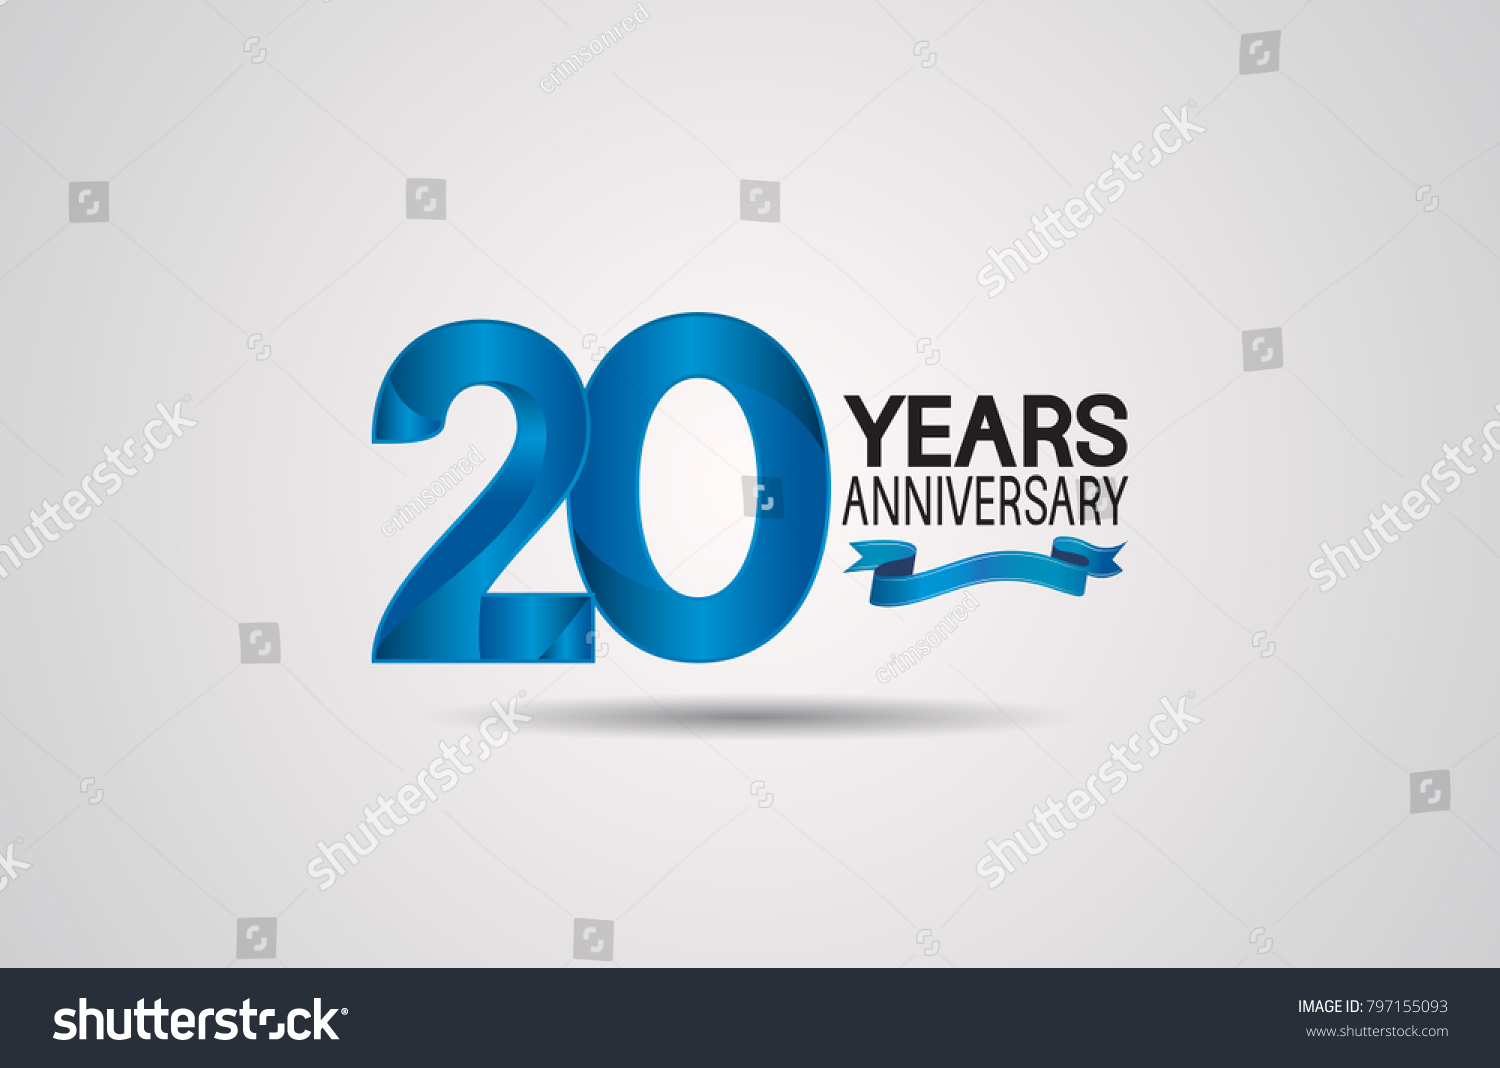 20 Years Anniversary Logotype Design With Blue Color And Ribbon